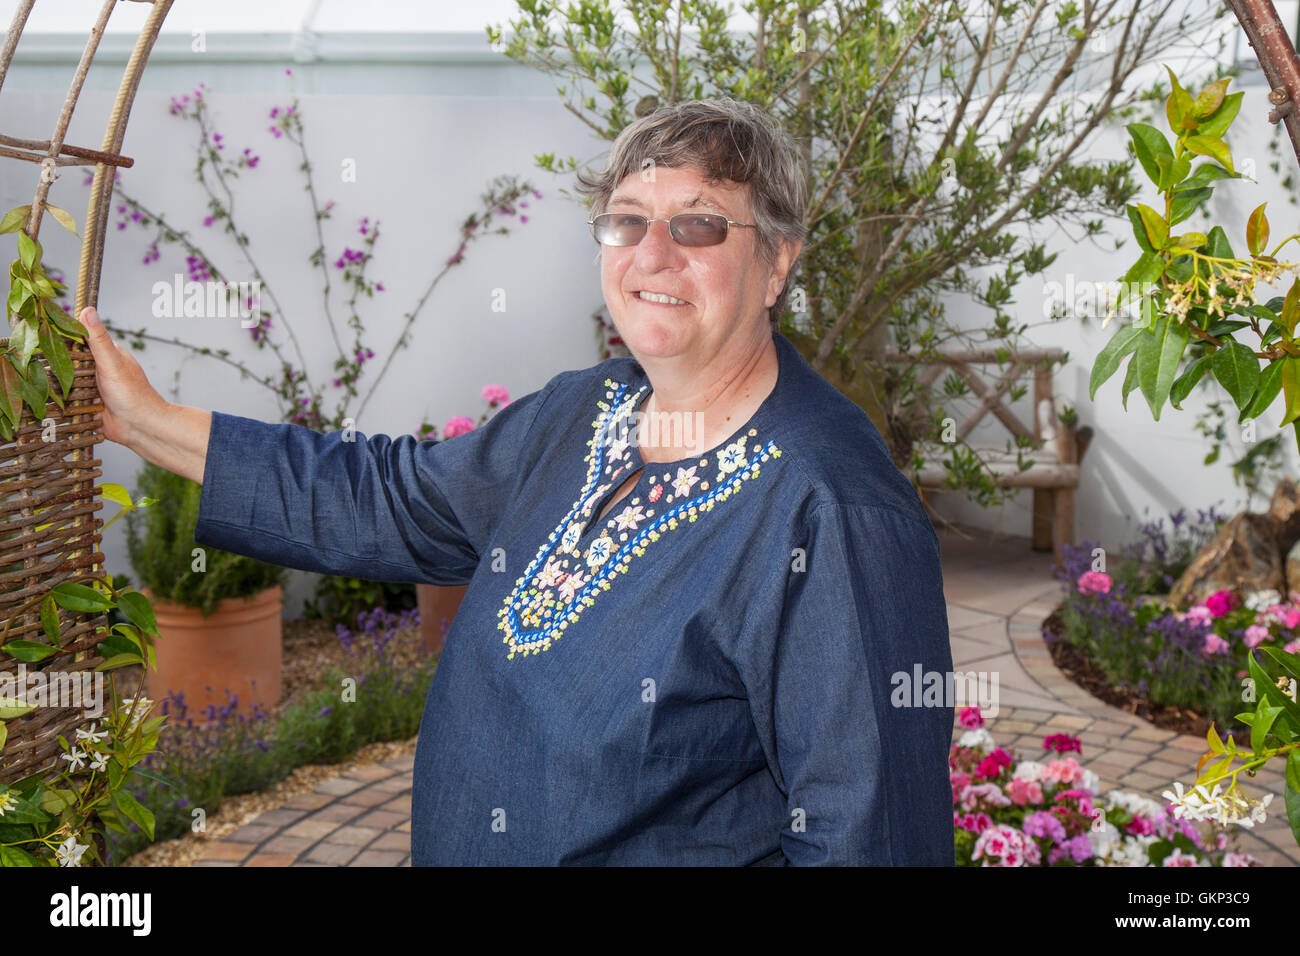 Southport, Merseyside, UK.  21st Aug, 2016.  Renowned horticulturist and TV celebrity gardener Christine Walkden, Stock Photo